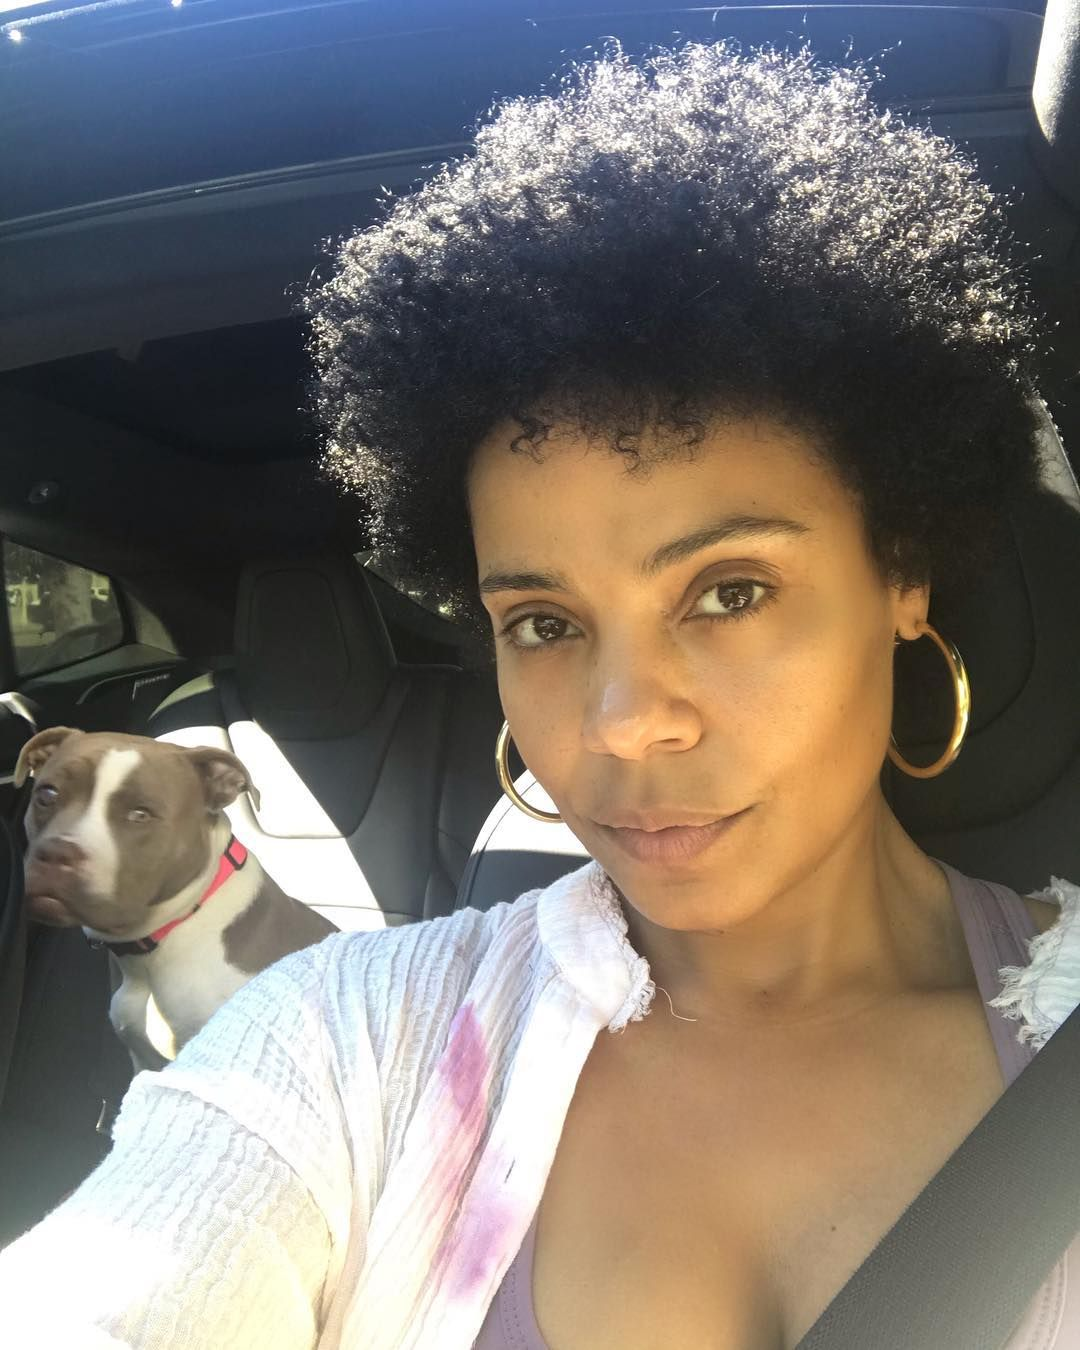 Sanaa Lathan On Instagram Just Rollin With My Bff Xenawarriorprincess Tgif Natural Hair Styles Natural Hair Inspiration Hair Beauty